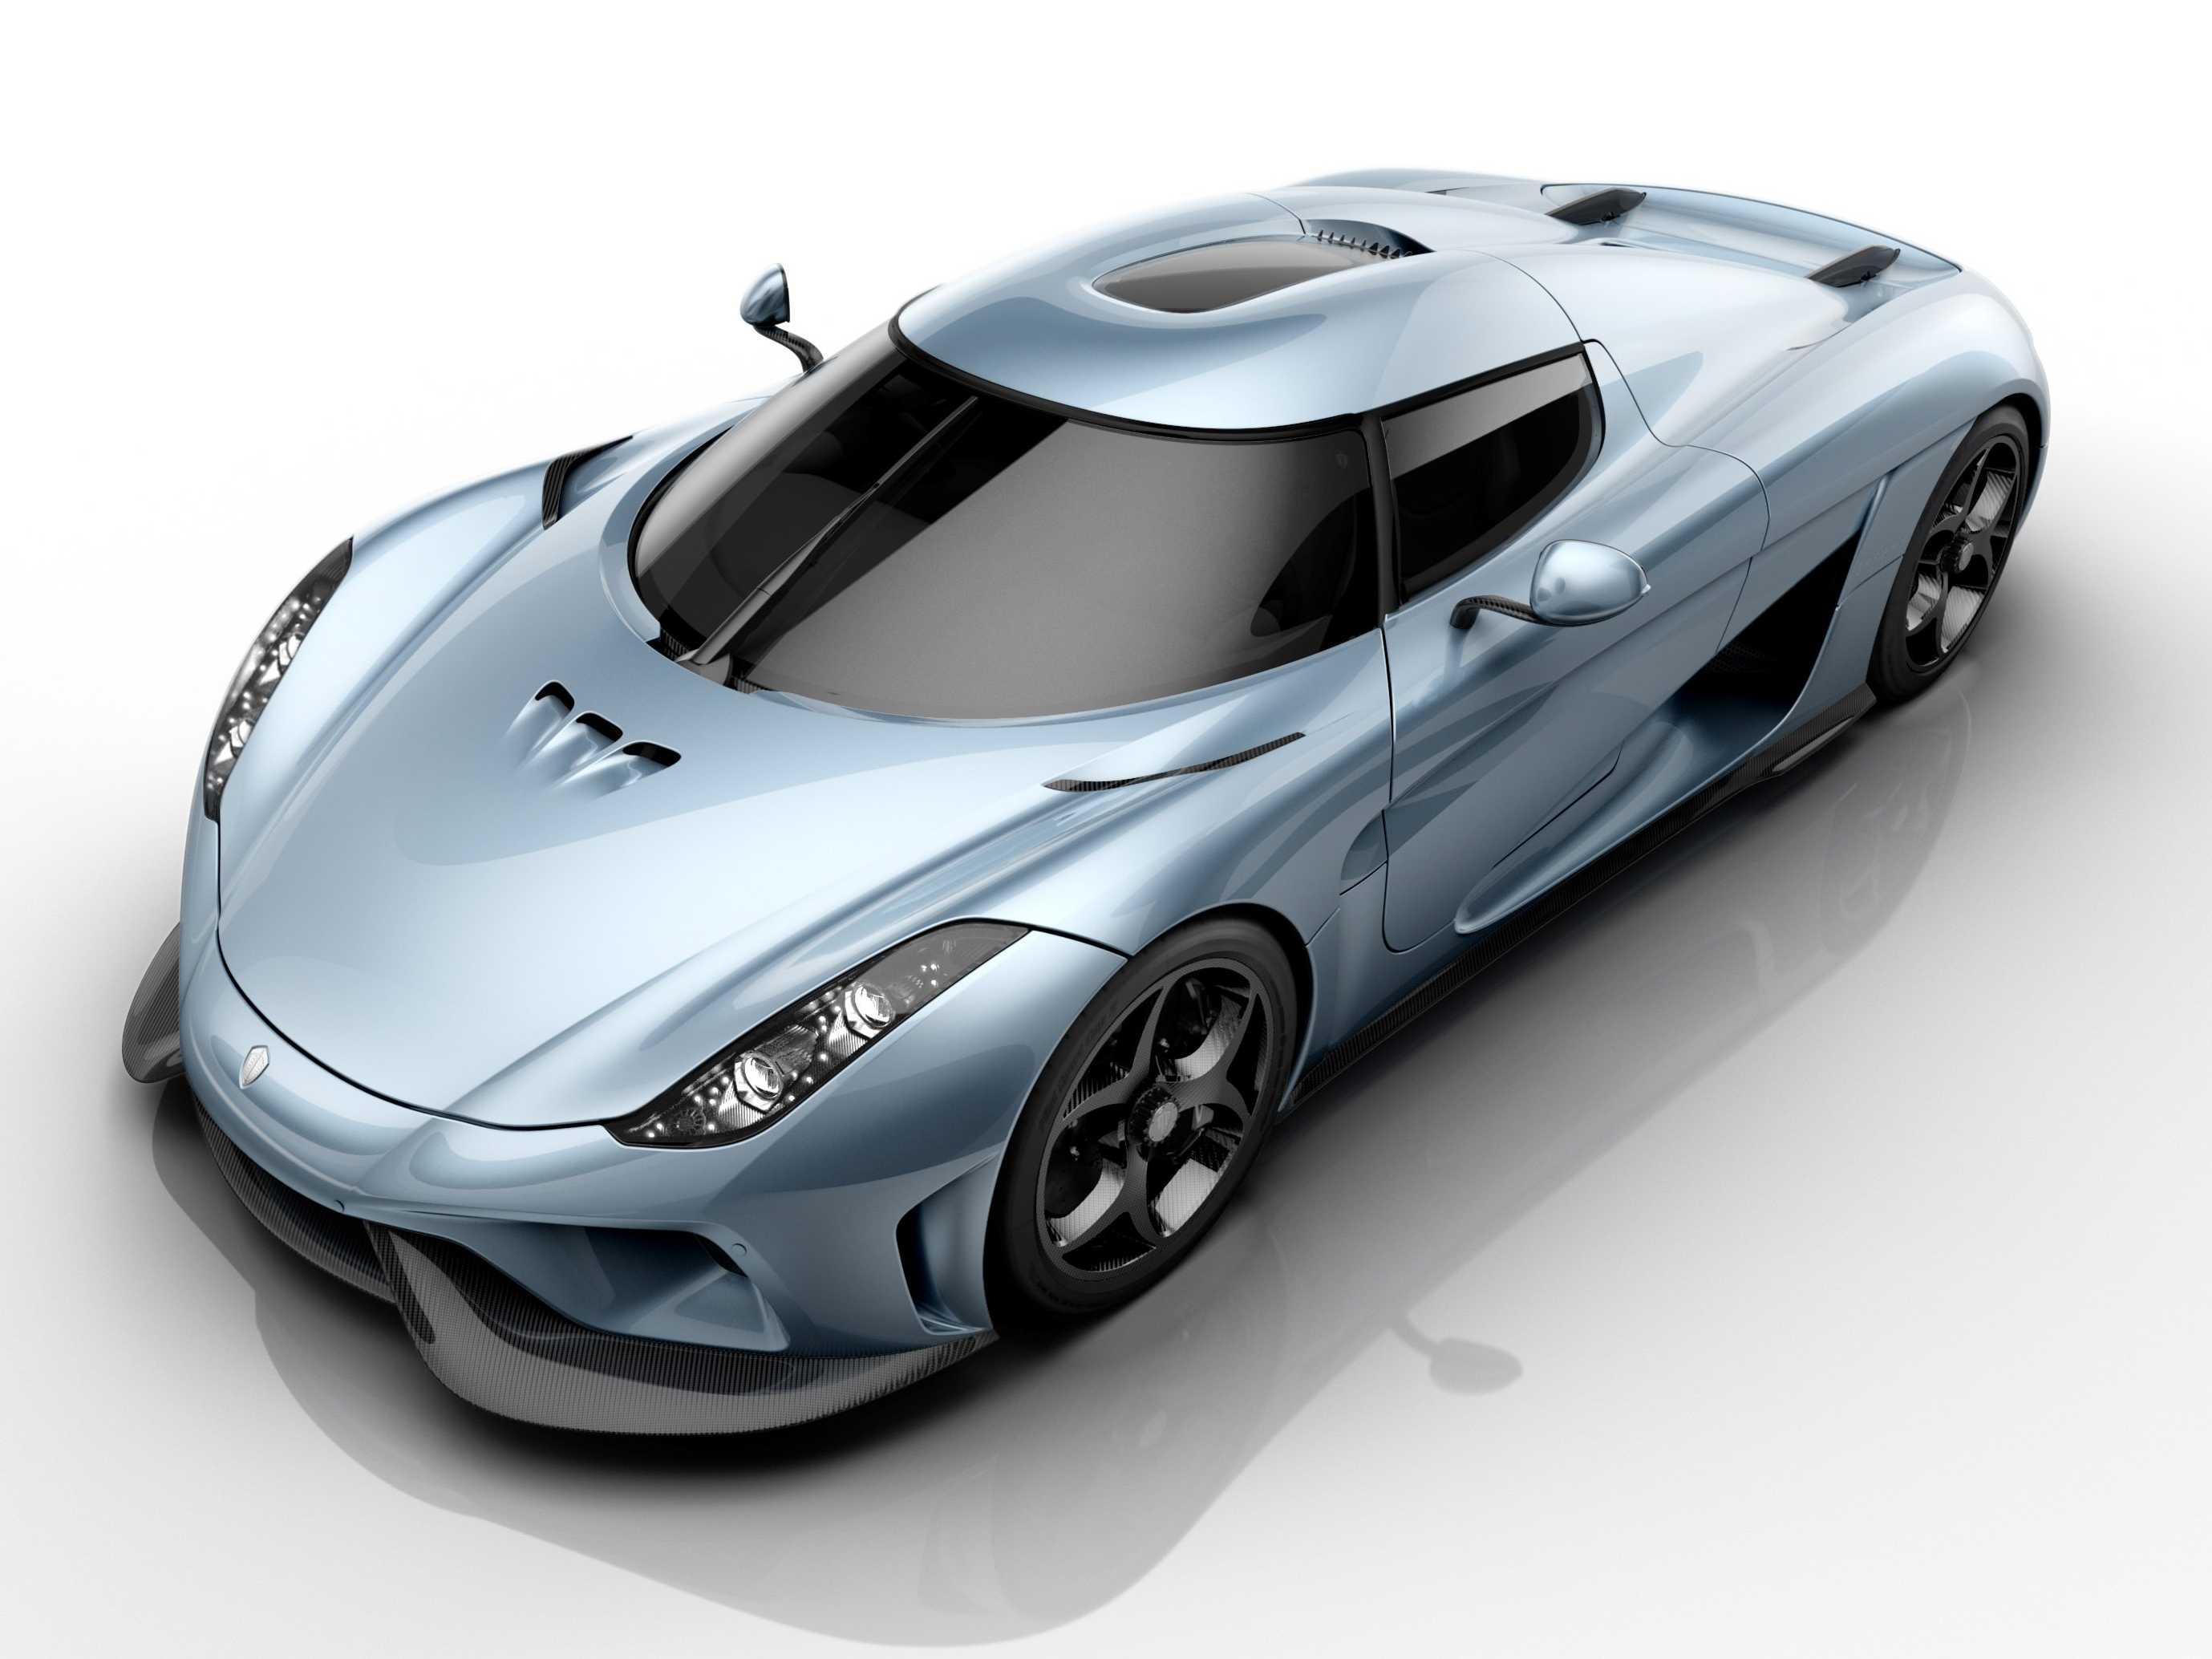 This $1.9 million Koenigsegg hybrid hypercar is here to terrify Ferrari and Porsche